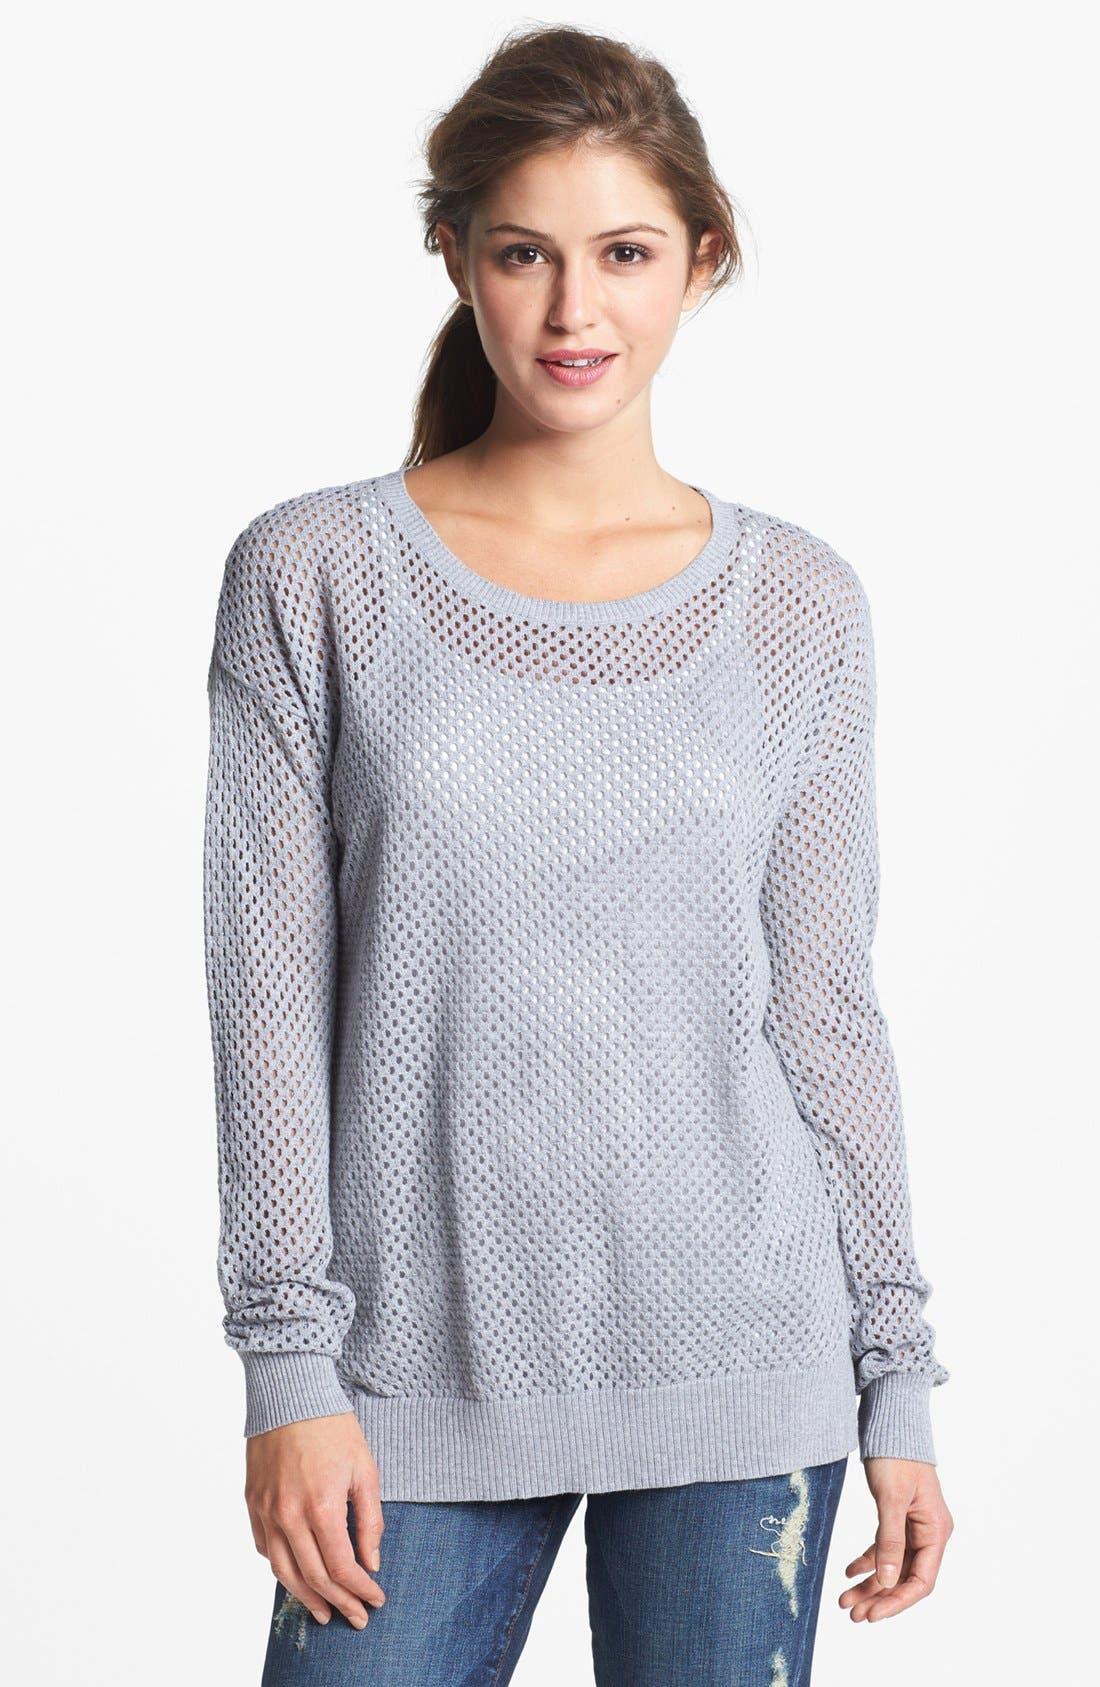 Alternate Image 1 Selected - Two by Vince Camuto Open Knit Sweater